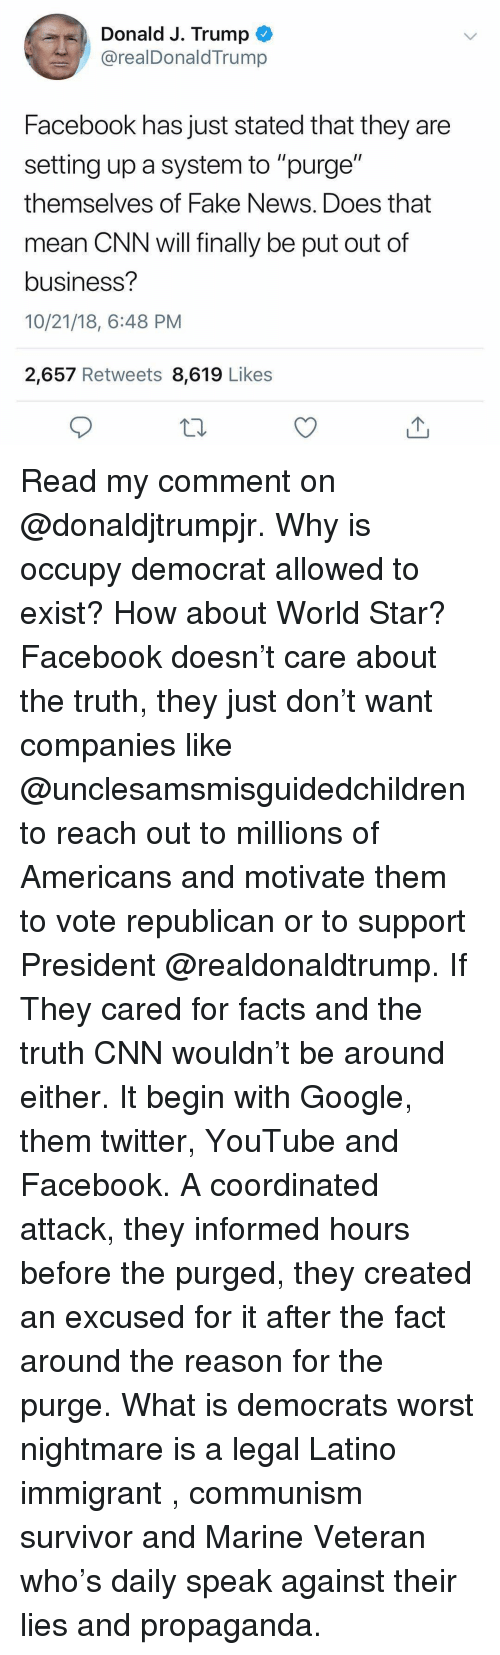 "cnn.com, Facebook, and Facts: Donald J. Trump  @realDonaldTrump  Facebook has just stated that they are  setting up a system to ""purge""  themselves of Fake News. Does that  mean CNN will finally be put out of  business?  10/21/18, 6:48 PM  2,657 Retweets 8,619 Likes Read my comment on @donaldjtrumpjr. Why is occupy democrat allowed to exist? How about World Star? Facebook doesn't care about the truth, they just don't want companies like @unclesamsmisguidedchildren to reach out to millions of Americans and motivate them to vote republican or to support President @realdonaldtrump. If They cared for facts and the truth CNN wouldn't be around either. It begin with Google, them twitter, YouTube and Facebook. A coordinated attack, they informed hours before the purged, they created an excused for it after the fact around the reason for the purge. What is democrats worst nightmare is a legal Latino immigrant , communism survivor and Marine Veteran who's daily speak against their lies and propaganda."